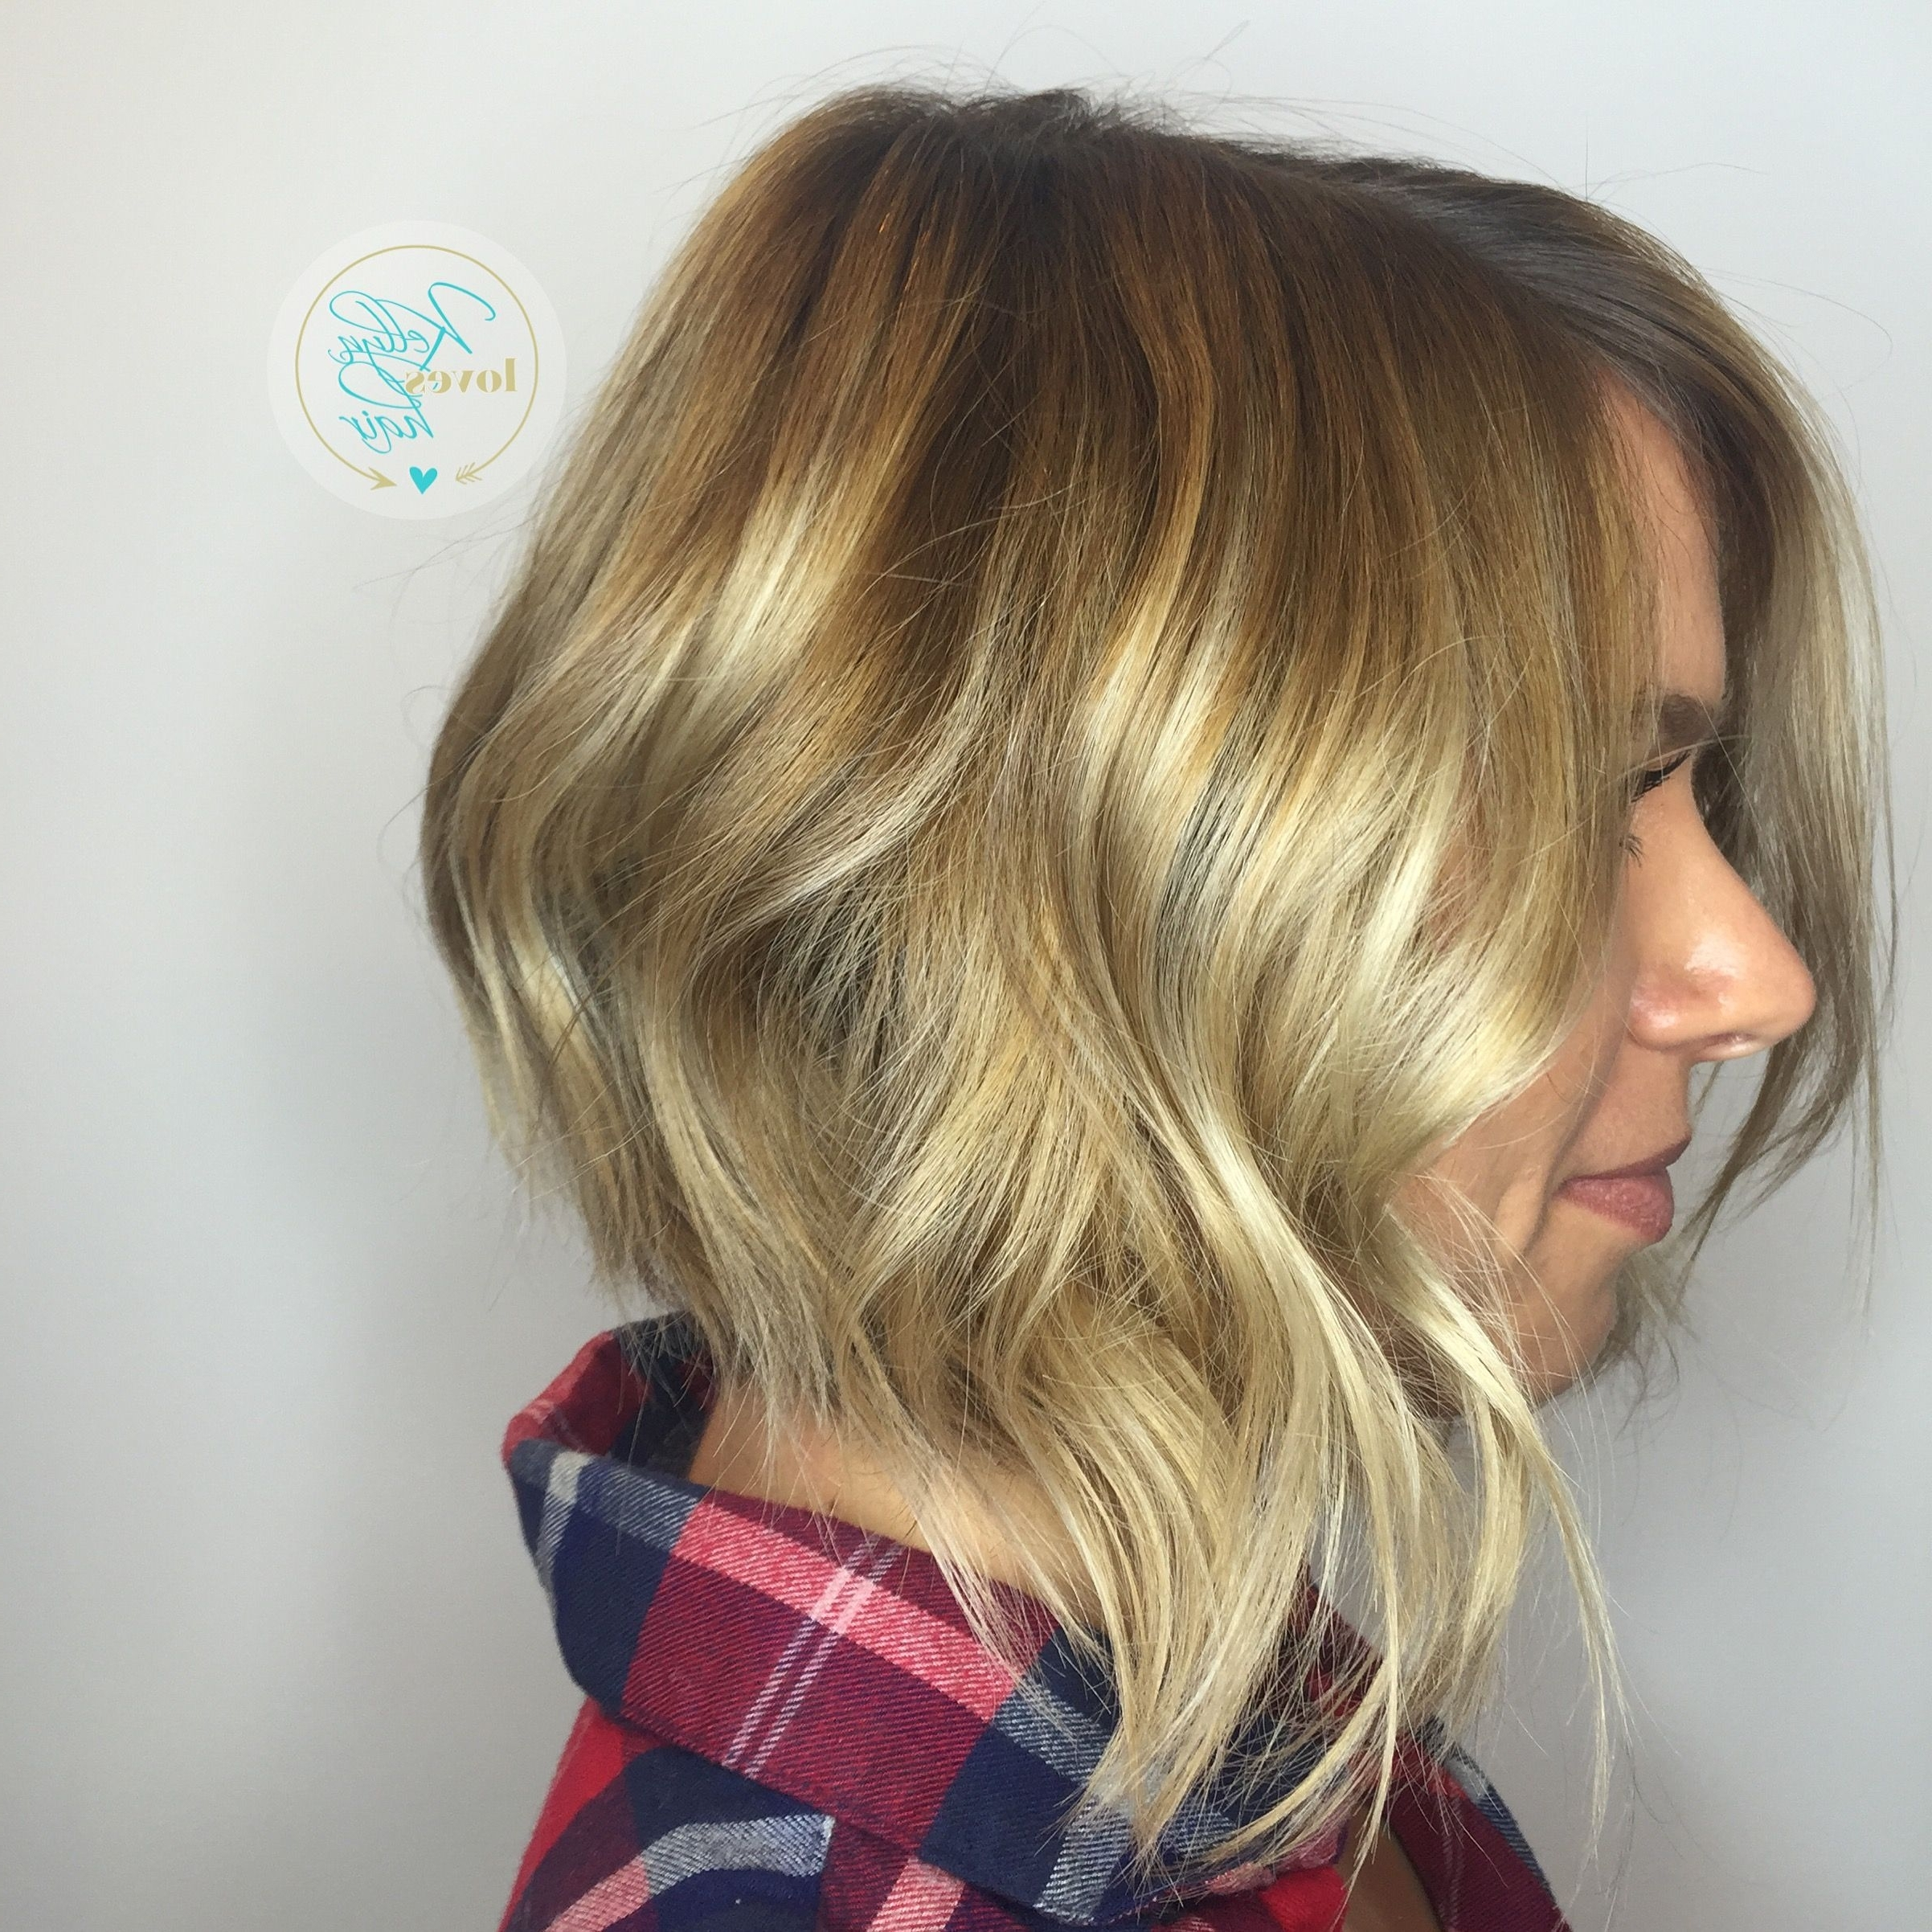 Short Bob Haircut With Disconnected Angle, Blonde Balayage Intended For Trendy Disconnected Blonde Balayage Pixie Hairstyles (View 15 of 20)